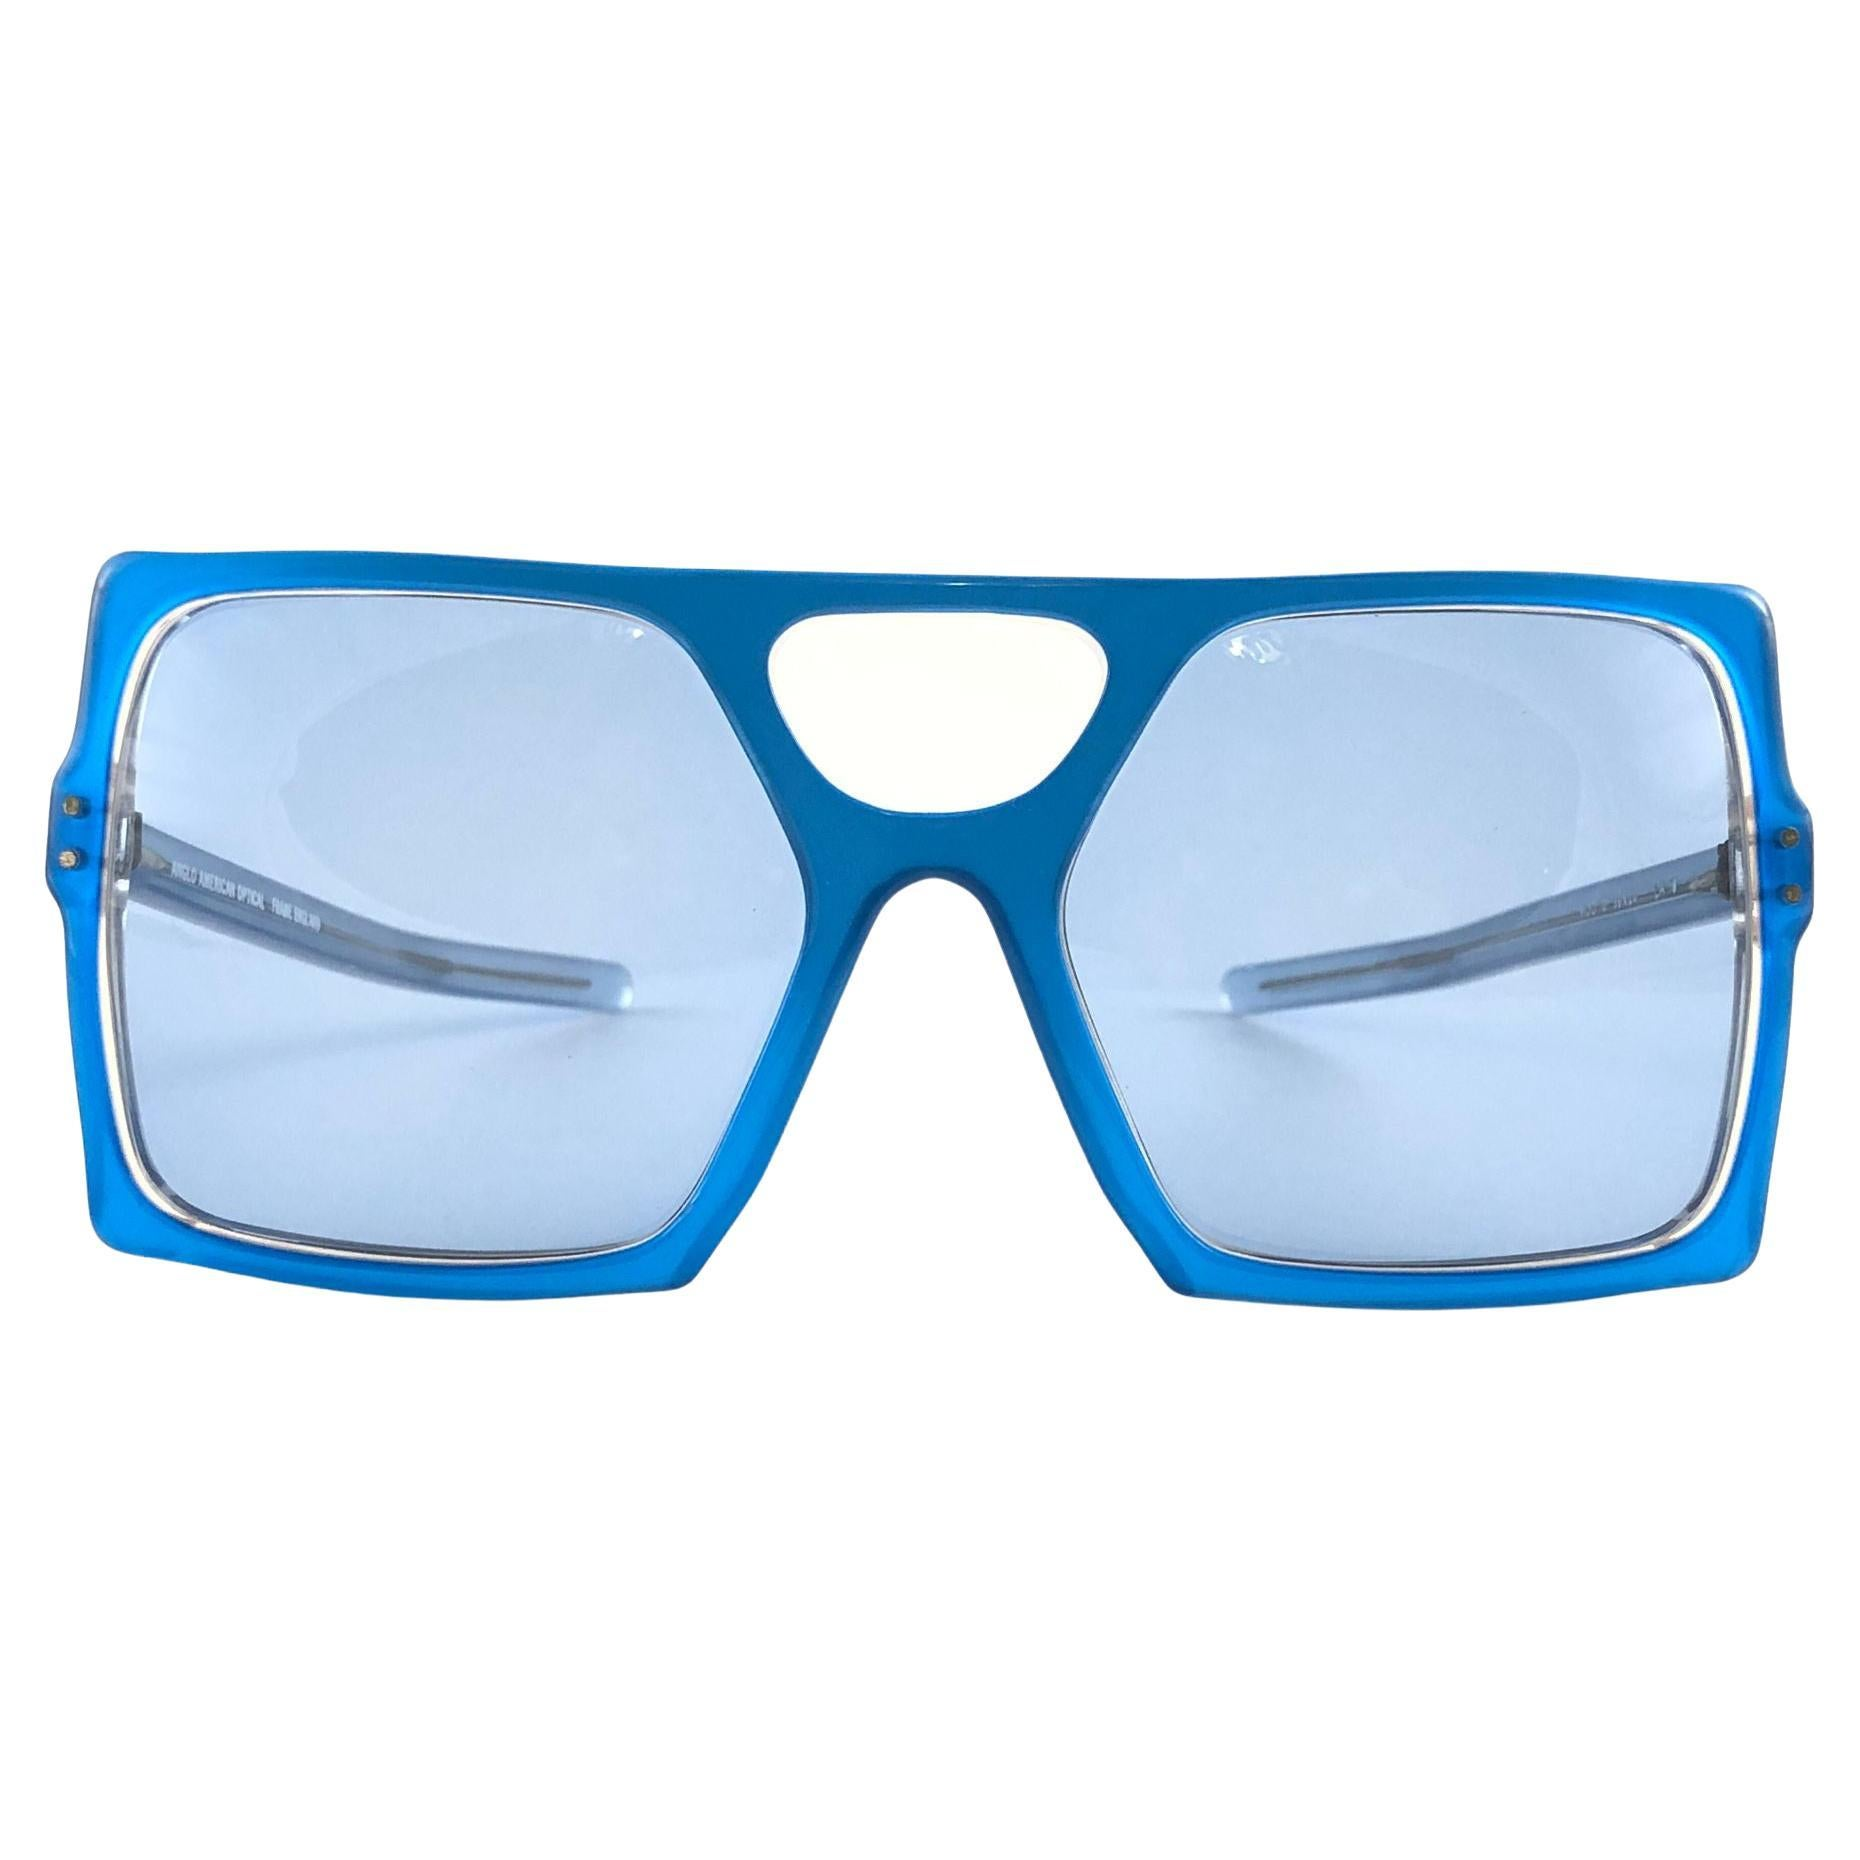 New Vintage Anglo American For Sir Winston Electric Blue Mask Sunglasses 1980